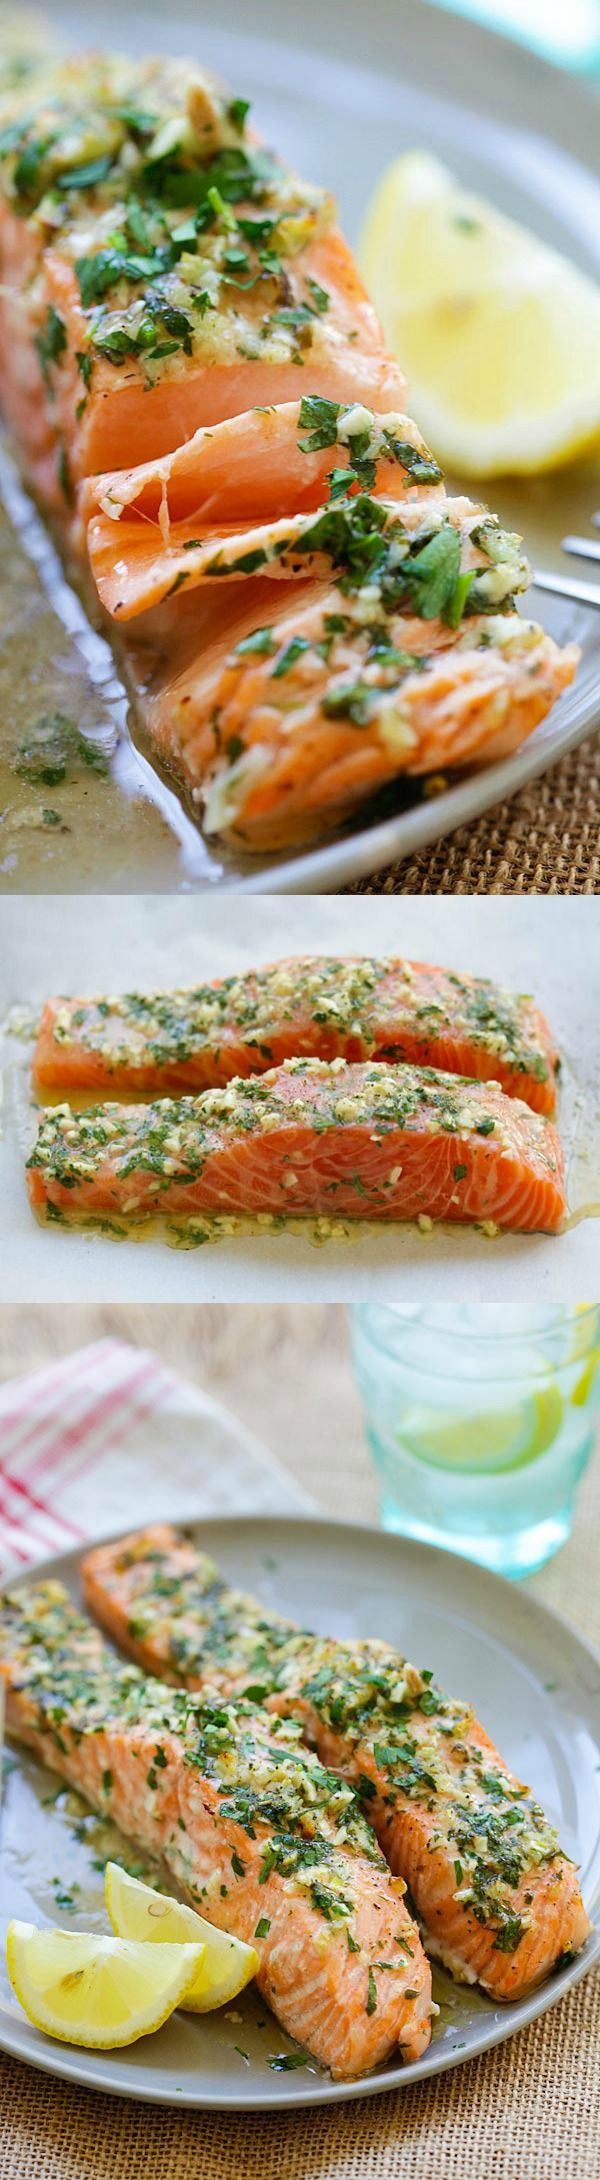 Garlic Herb Roasted Salmon – best roasted salmon recipe ever! Made with butter, garlic, herb, lemon and dinner is ready in 20 mins | rasamalaysia.com